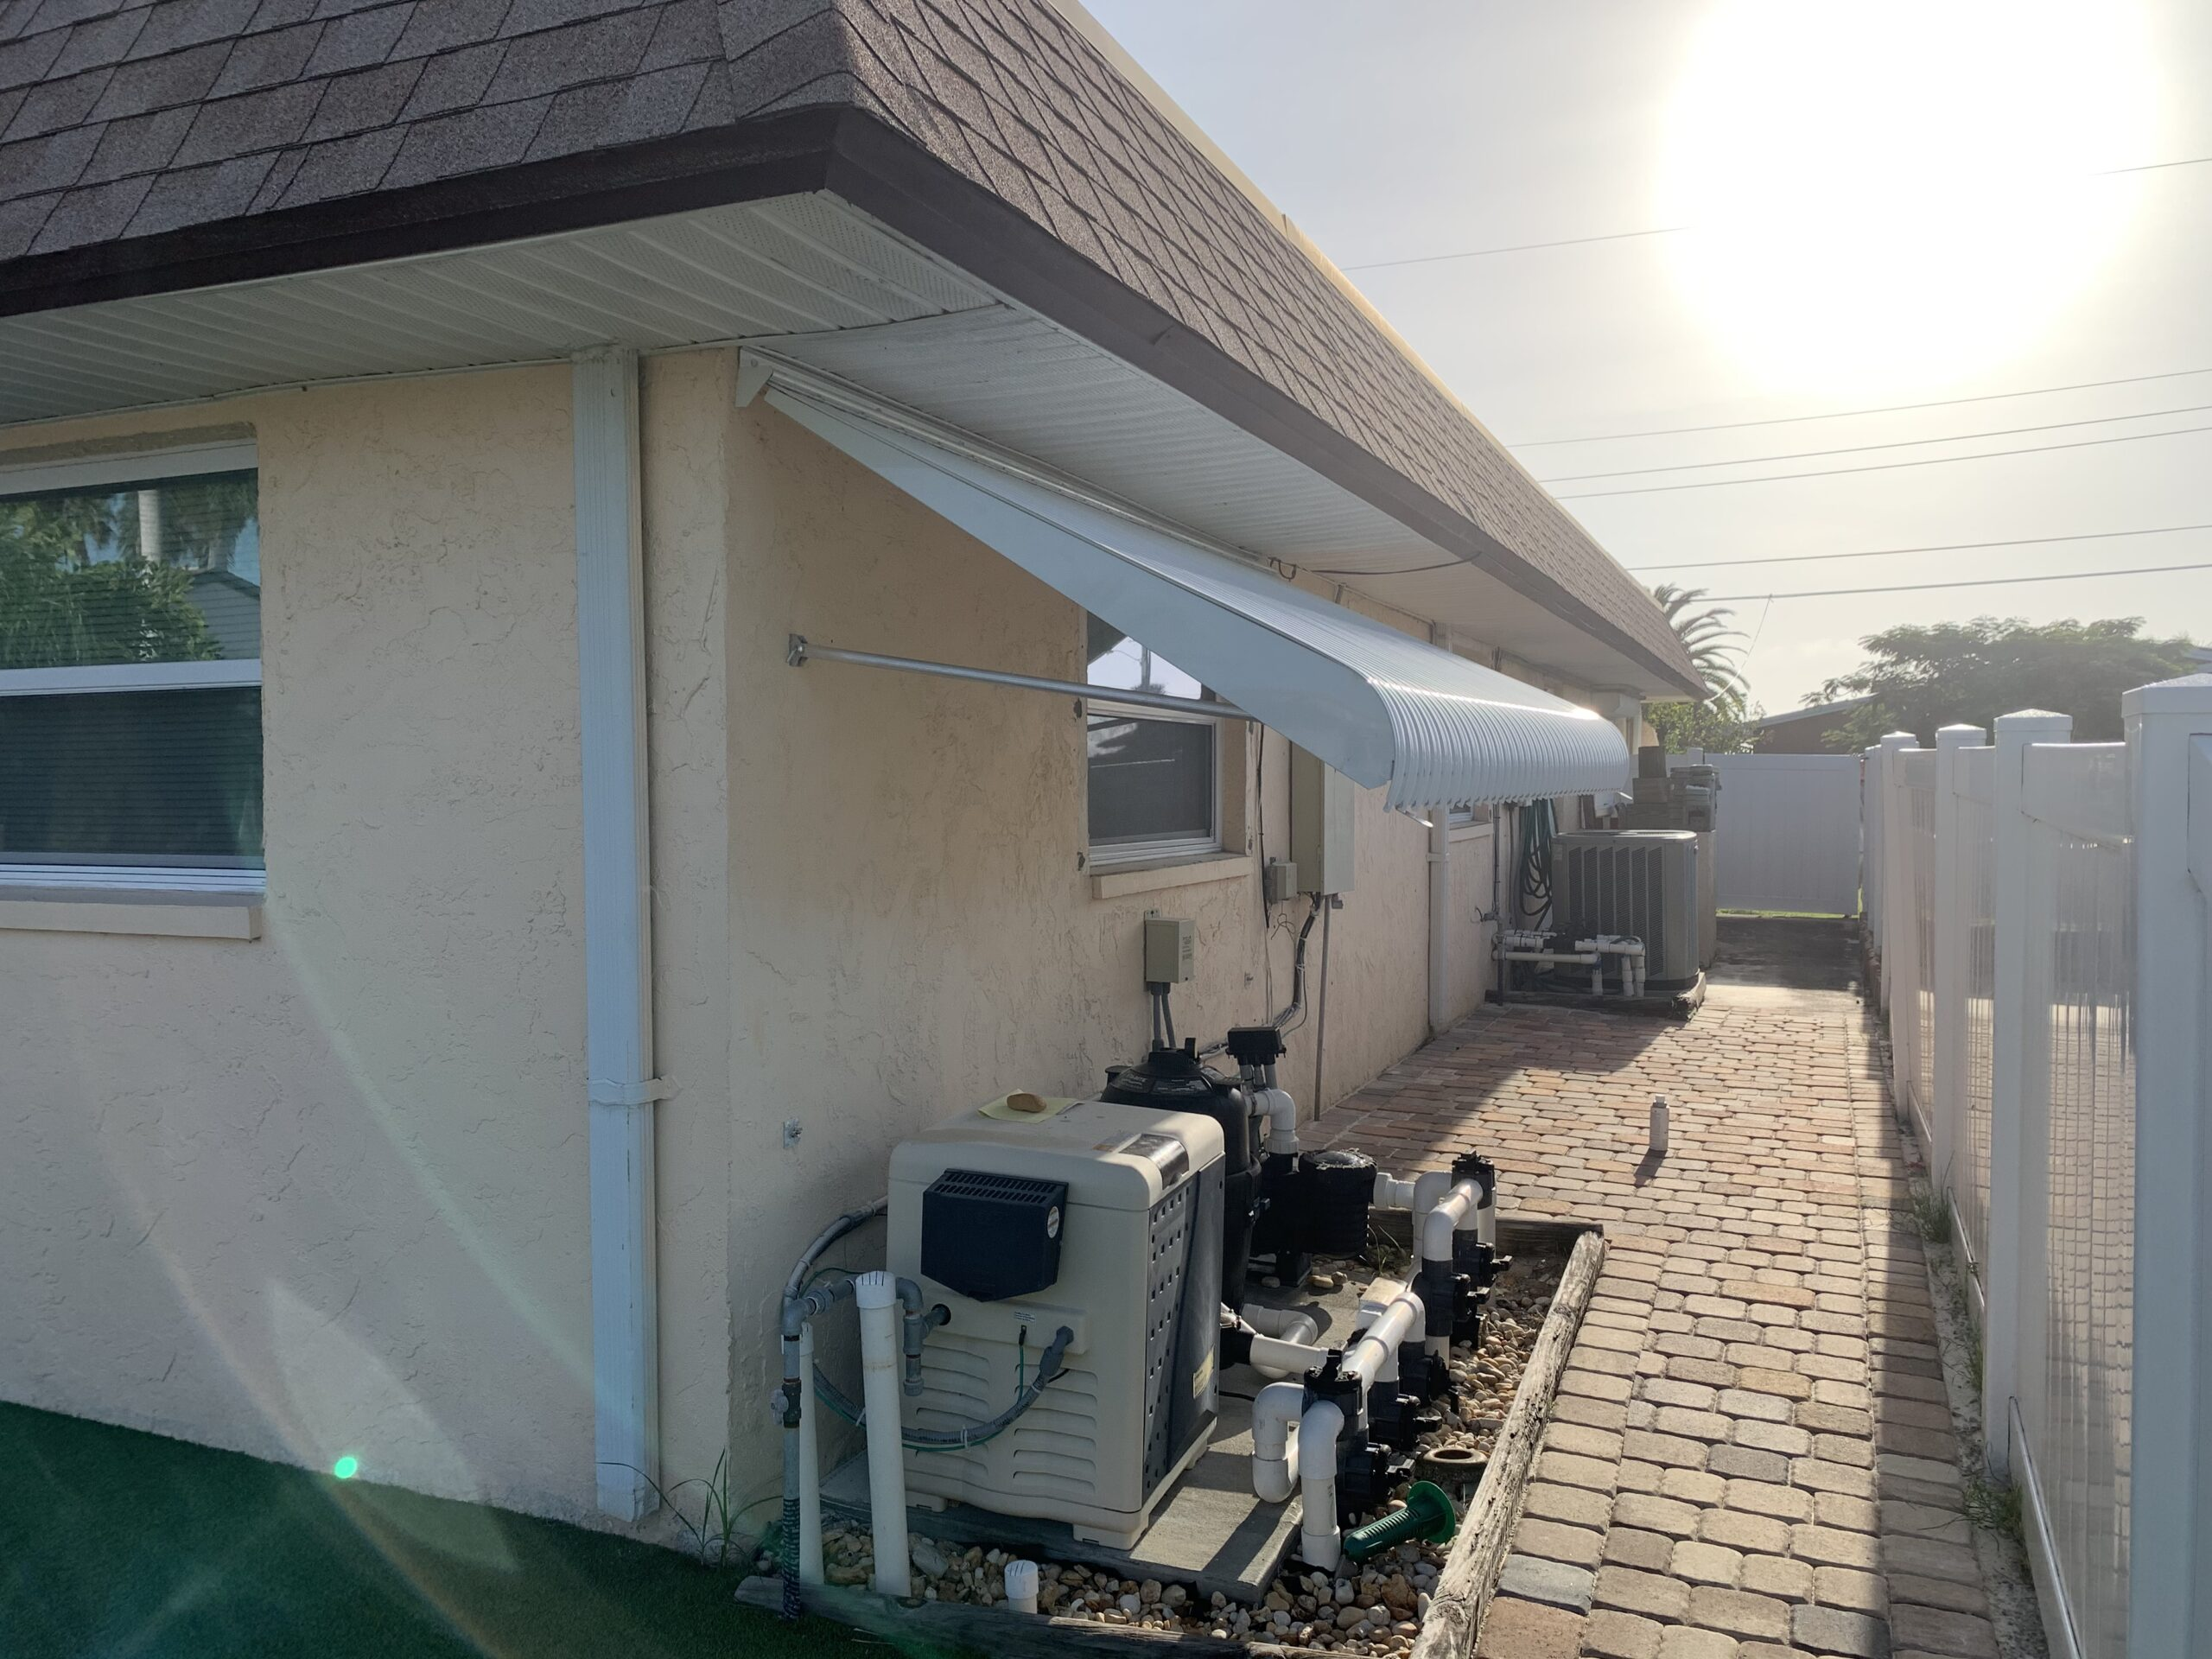 pool-equipment-awning-project